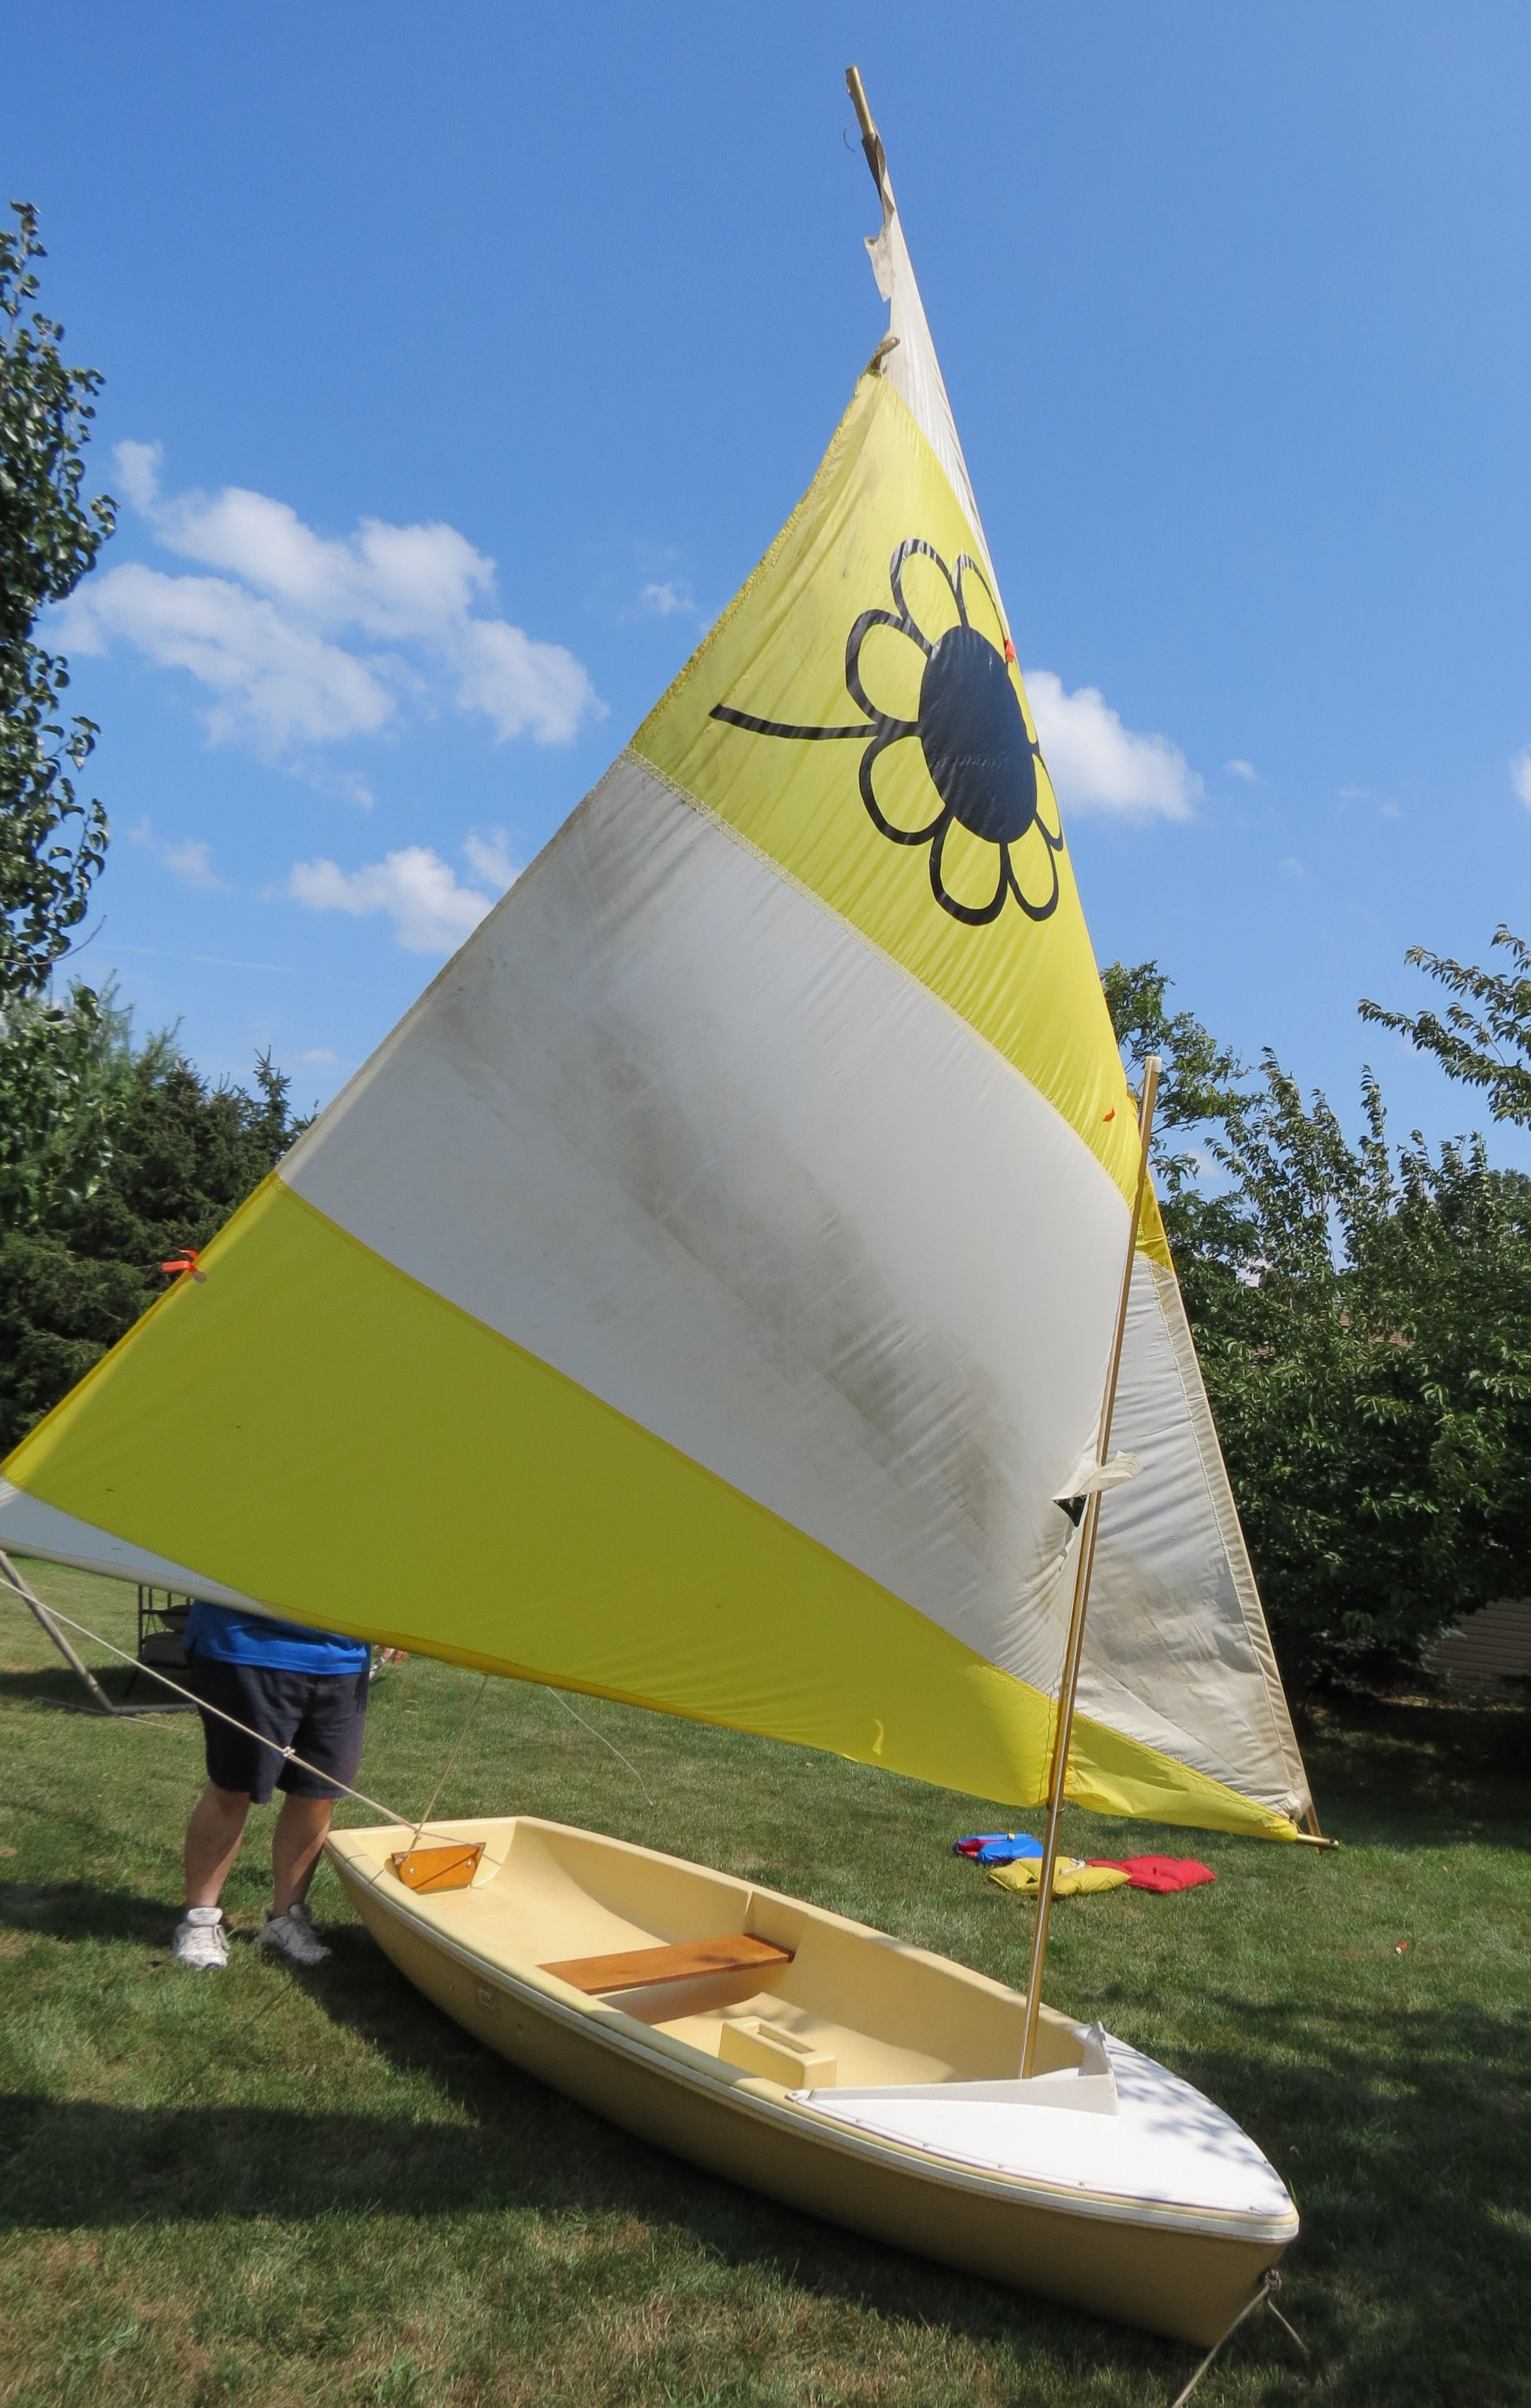 Sunflower brand sailboat  I had one of these as a kid  Great